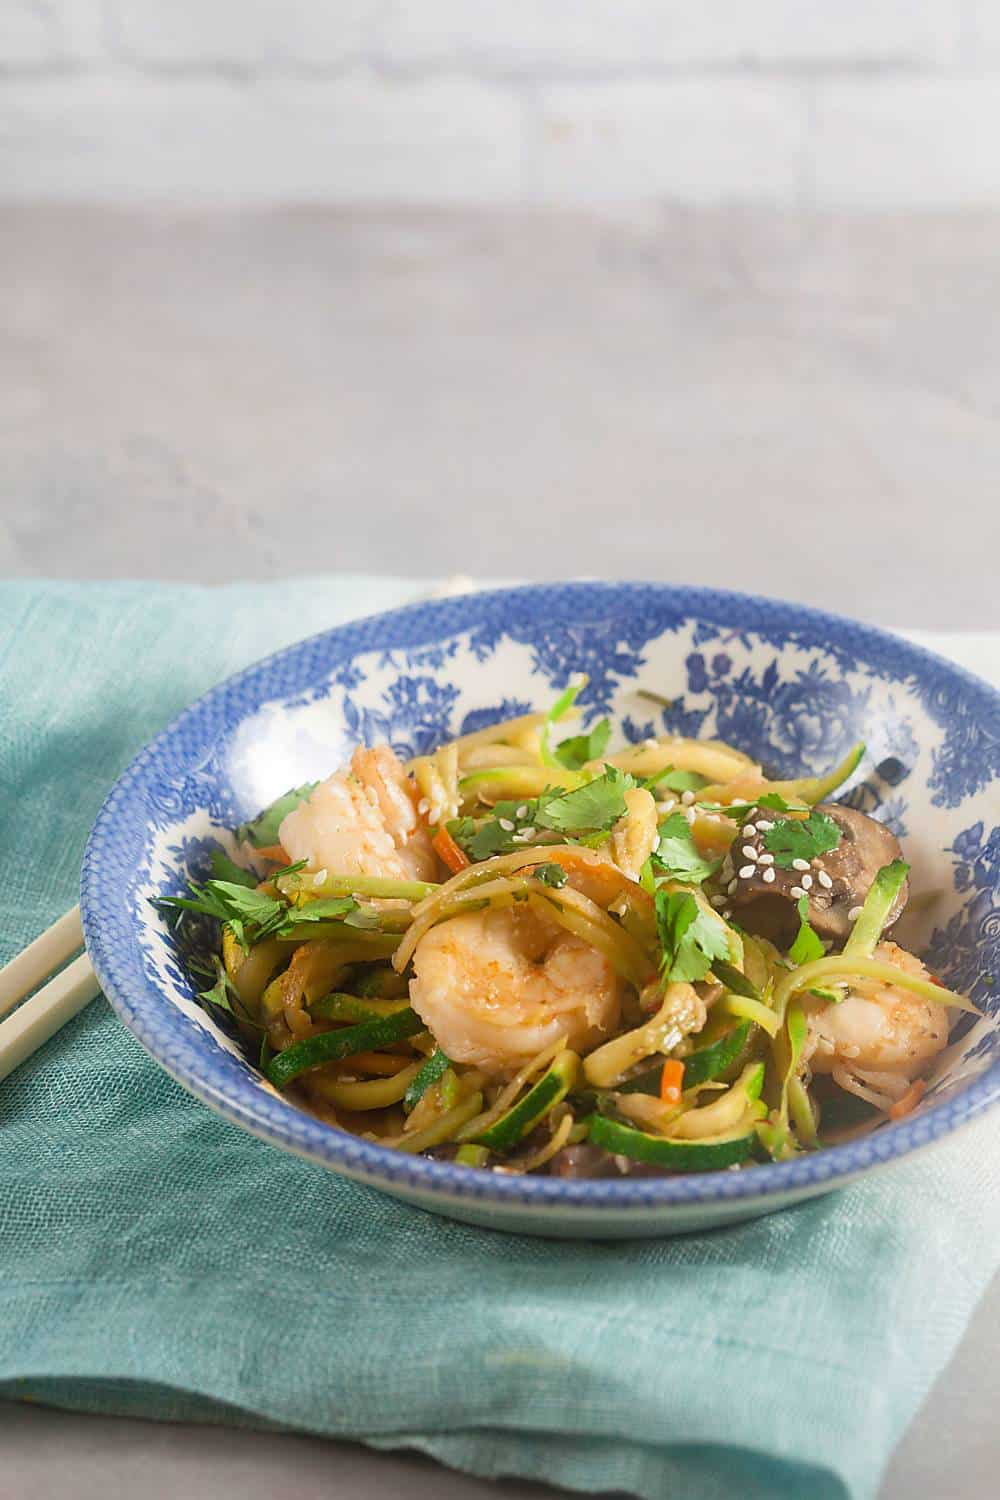 zucchini noodle shrimp stir fry recipe